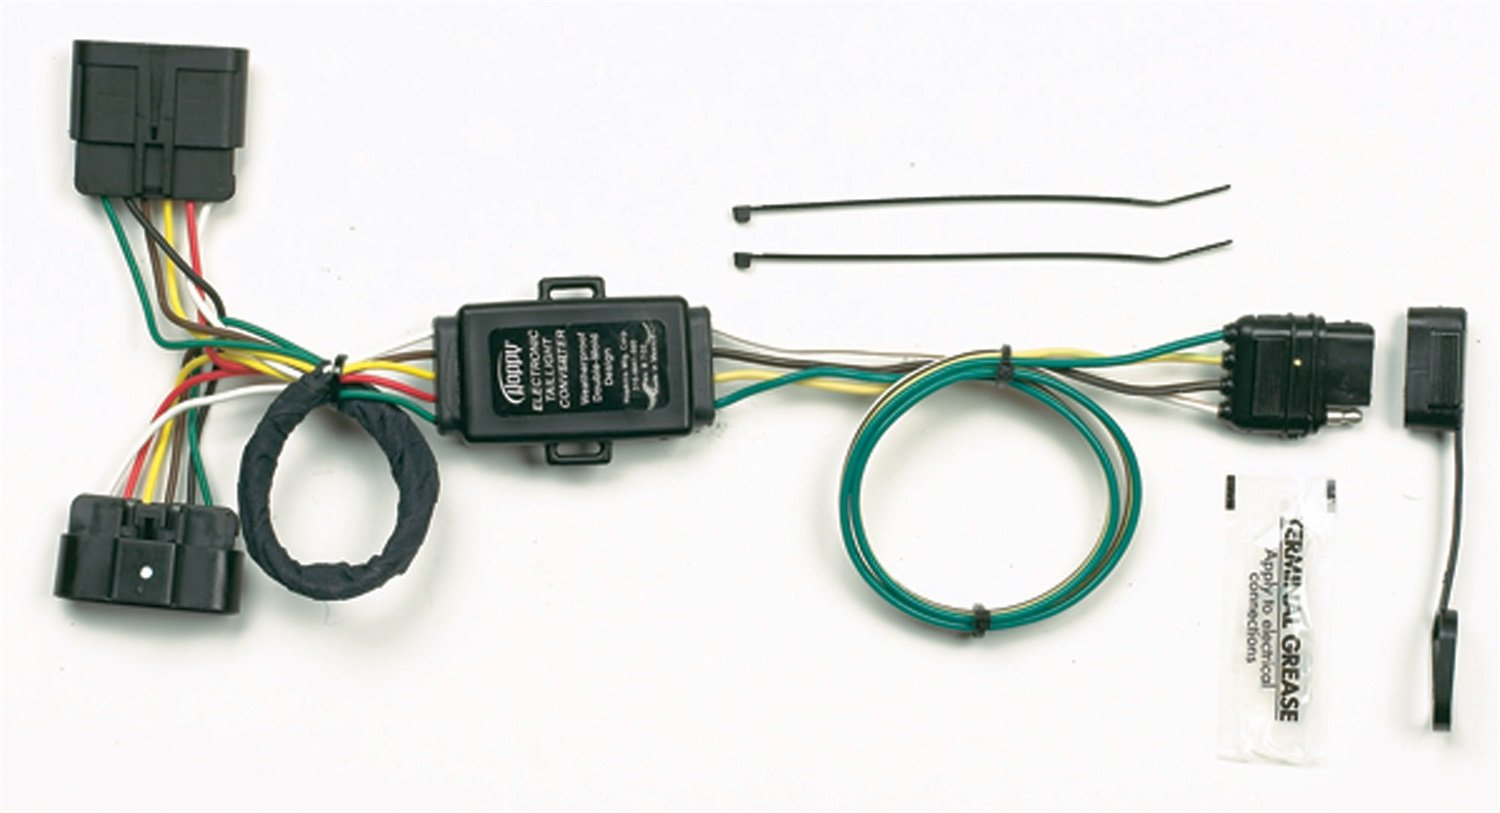 Amazon.com: Hopkins 41165 LiteMate Vehicle to Trailer Wiring Kit (Pico  6772PT) 2004-2008 Chevrolet Colorado and GMC Canyon, 2006 Isuzu I-280, ...